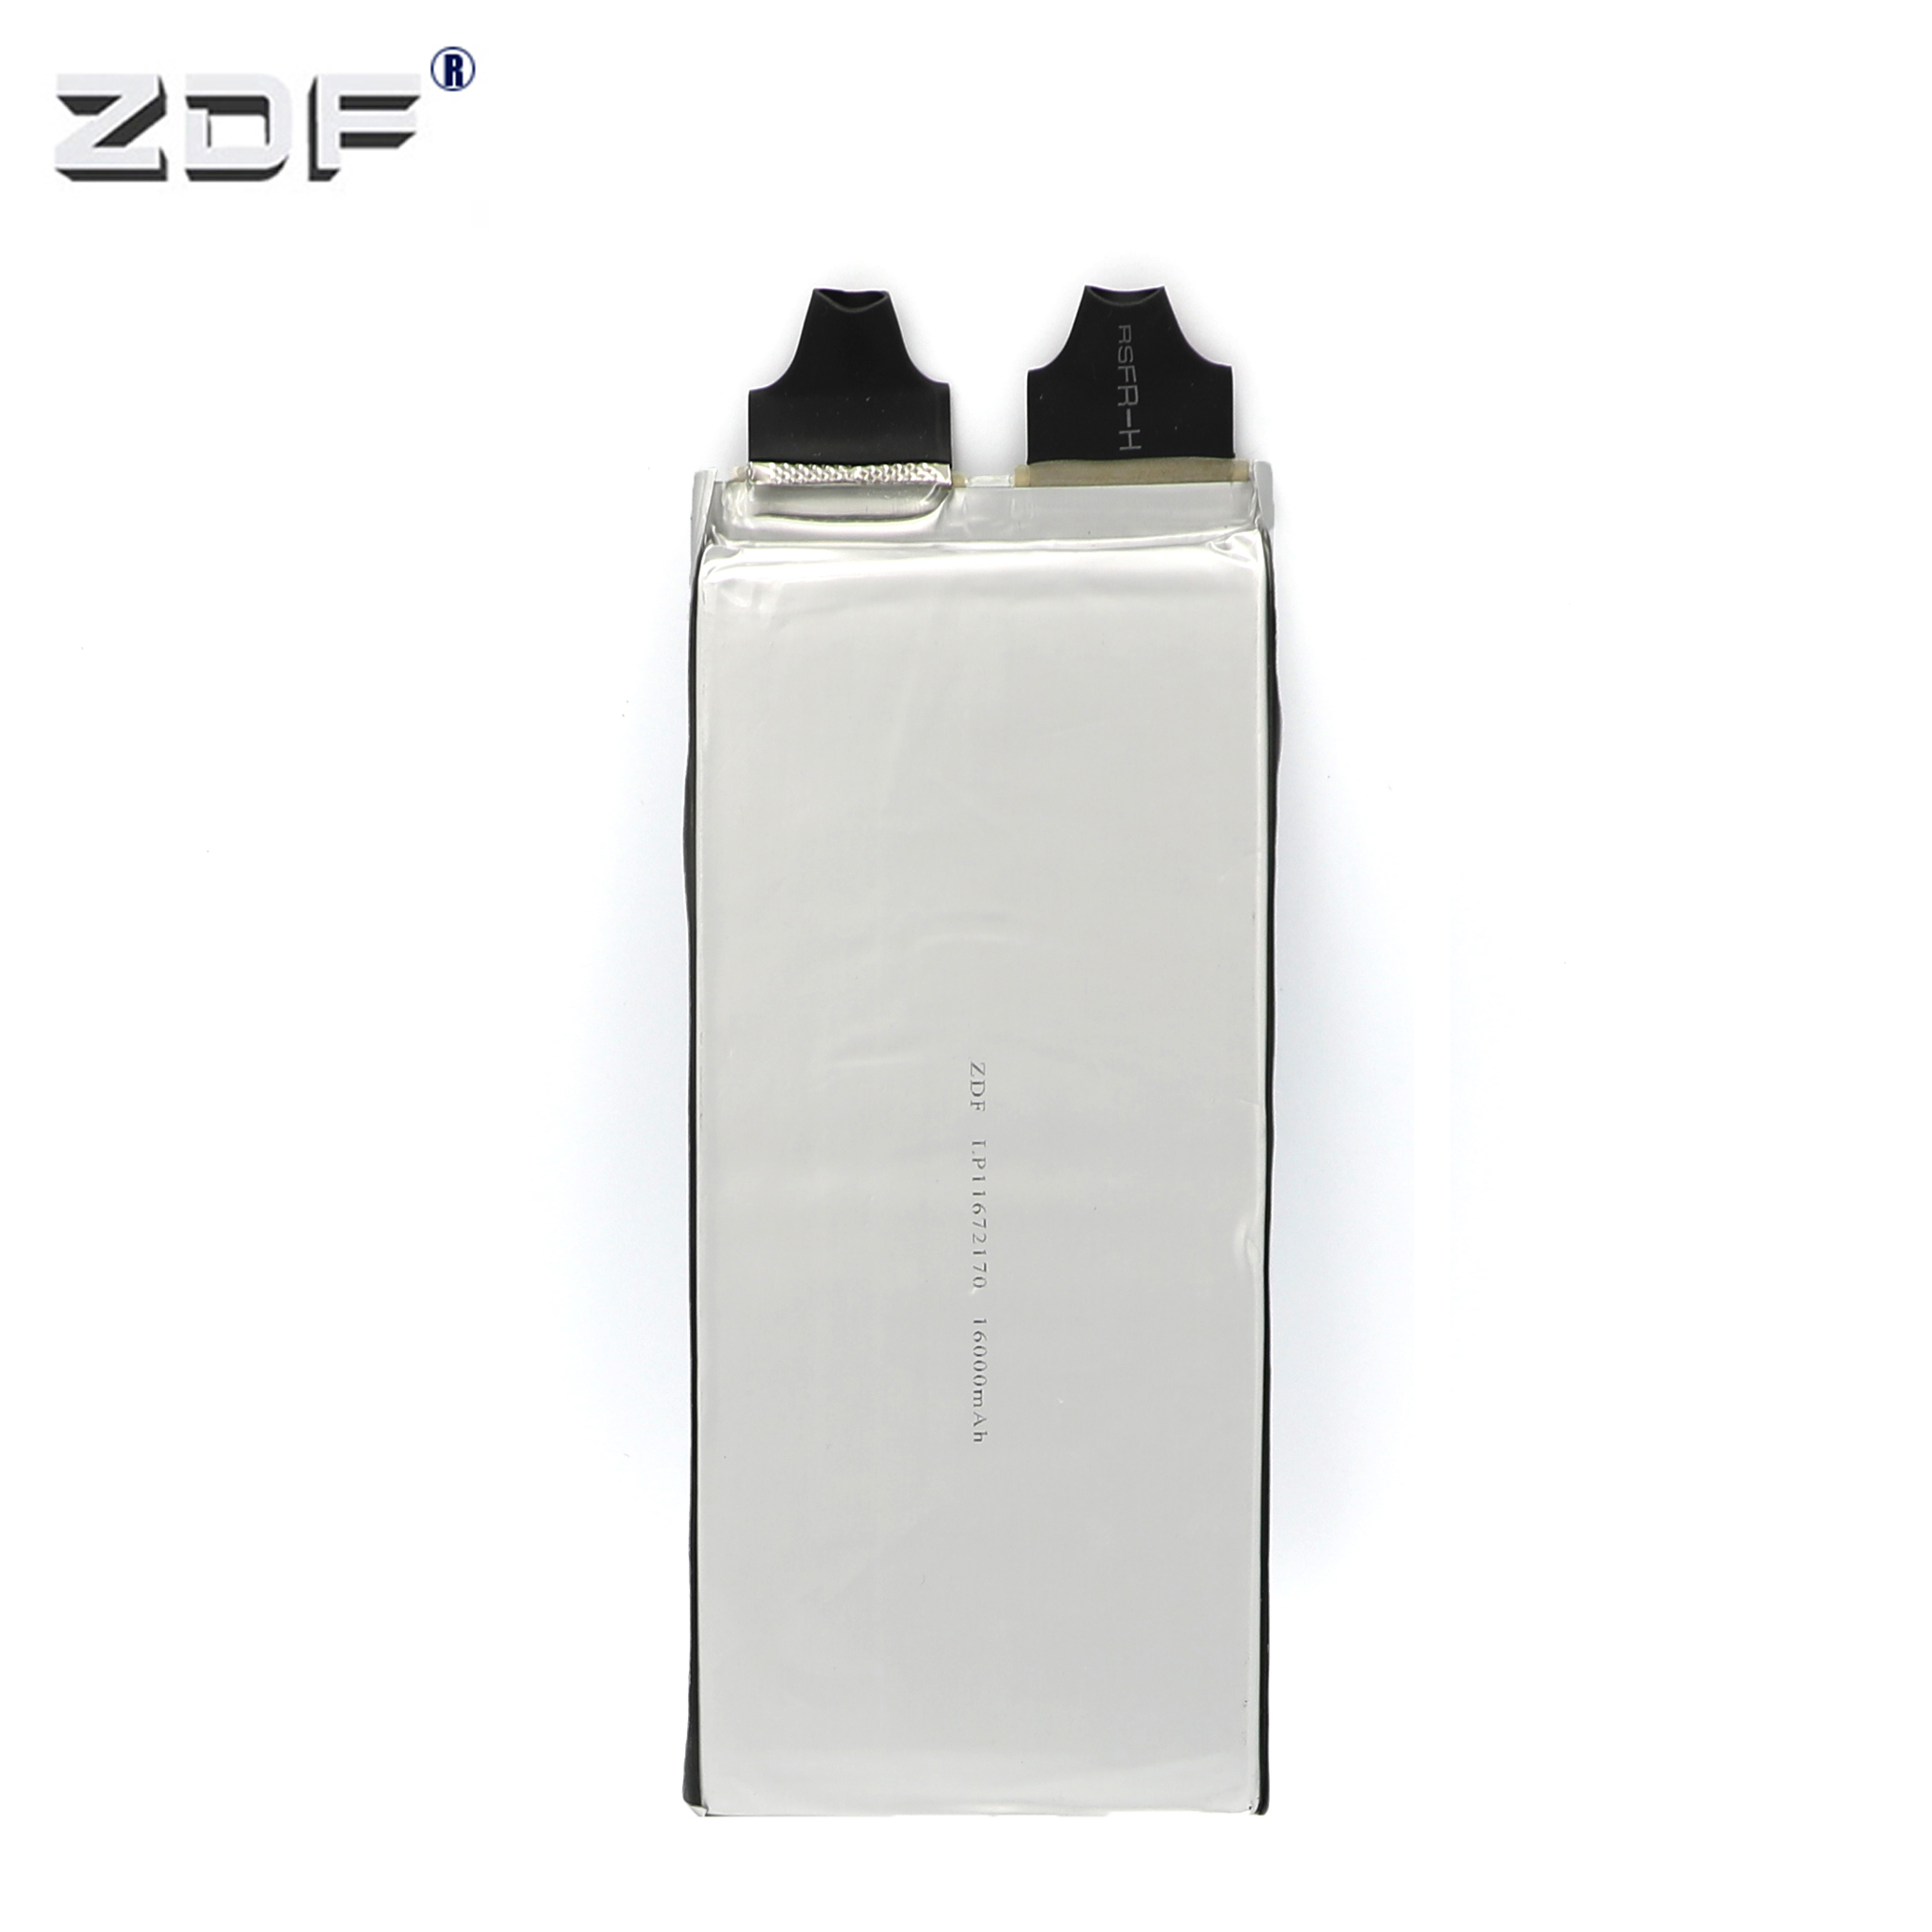 ZDF <font><b>Lipo</b></font> Battery Cell 3.7V <font><b>16000mah</b></font> 25C DIY 2S 3S <font><b>4S</b></font> 6S RC Plane Heliopter Airplane Quadcopter Drone Battery image